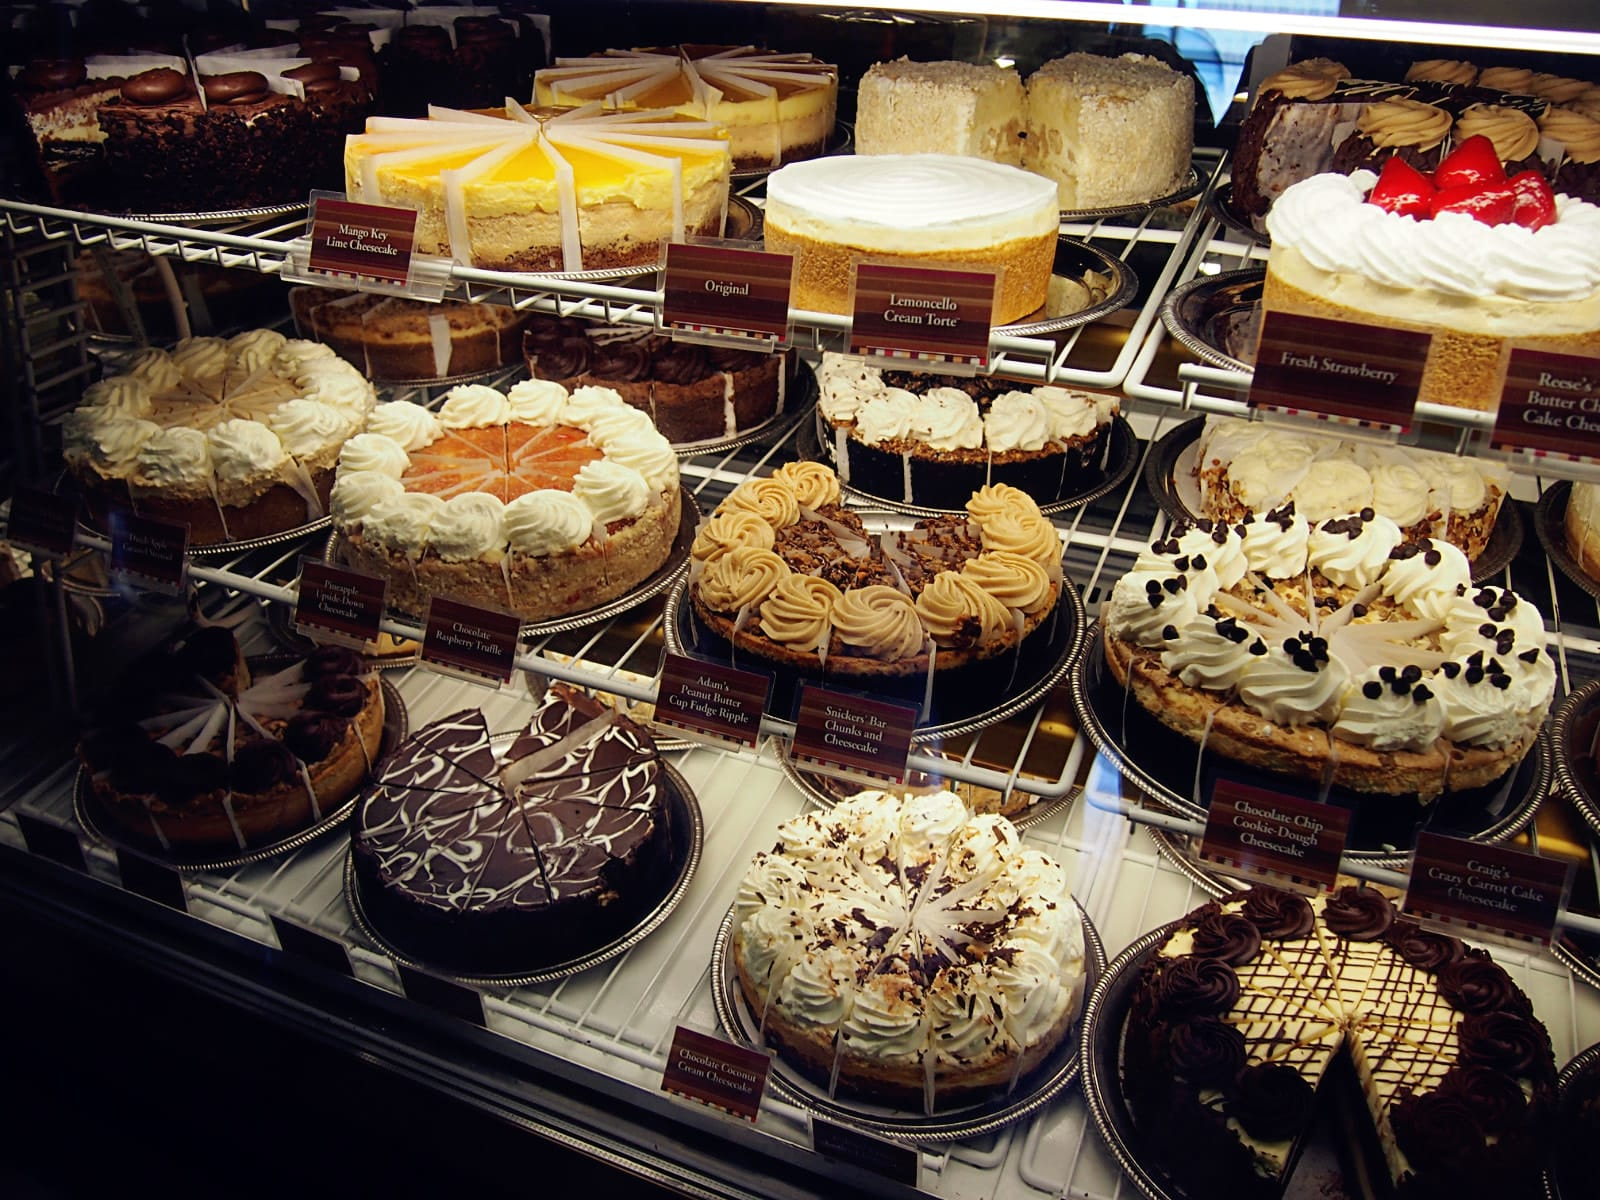 May 24, · The Cheesecake Factory: Make an Anniversary or Birthday Special - See traveler reviews, 56 candid photos, and great deals for Roseville, CA, at TripAdvisor TripAdvisor reviews.